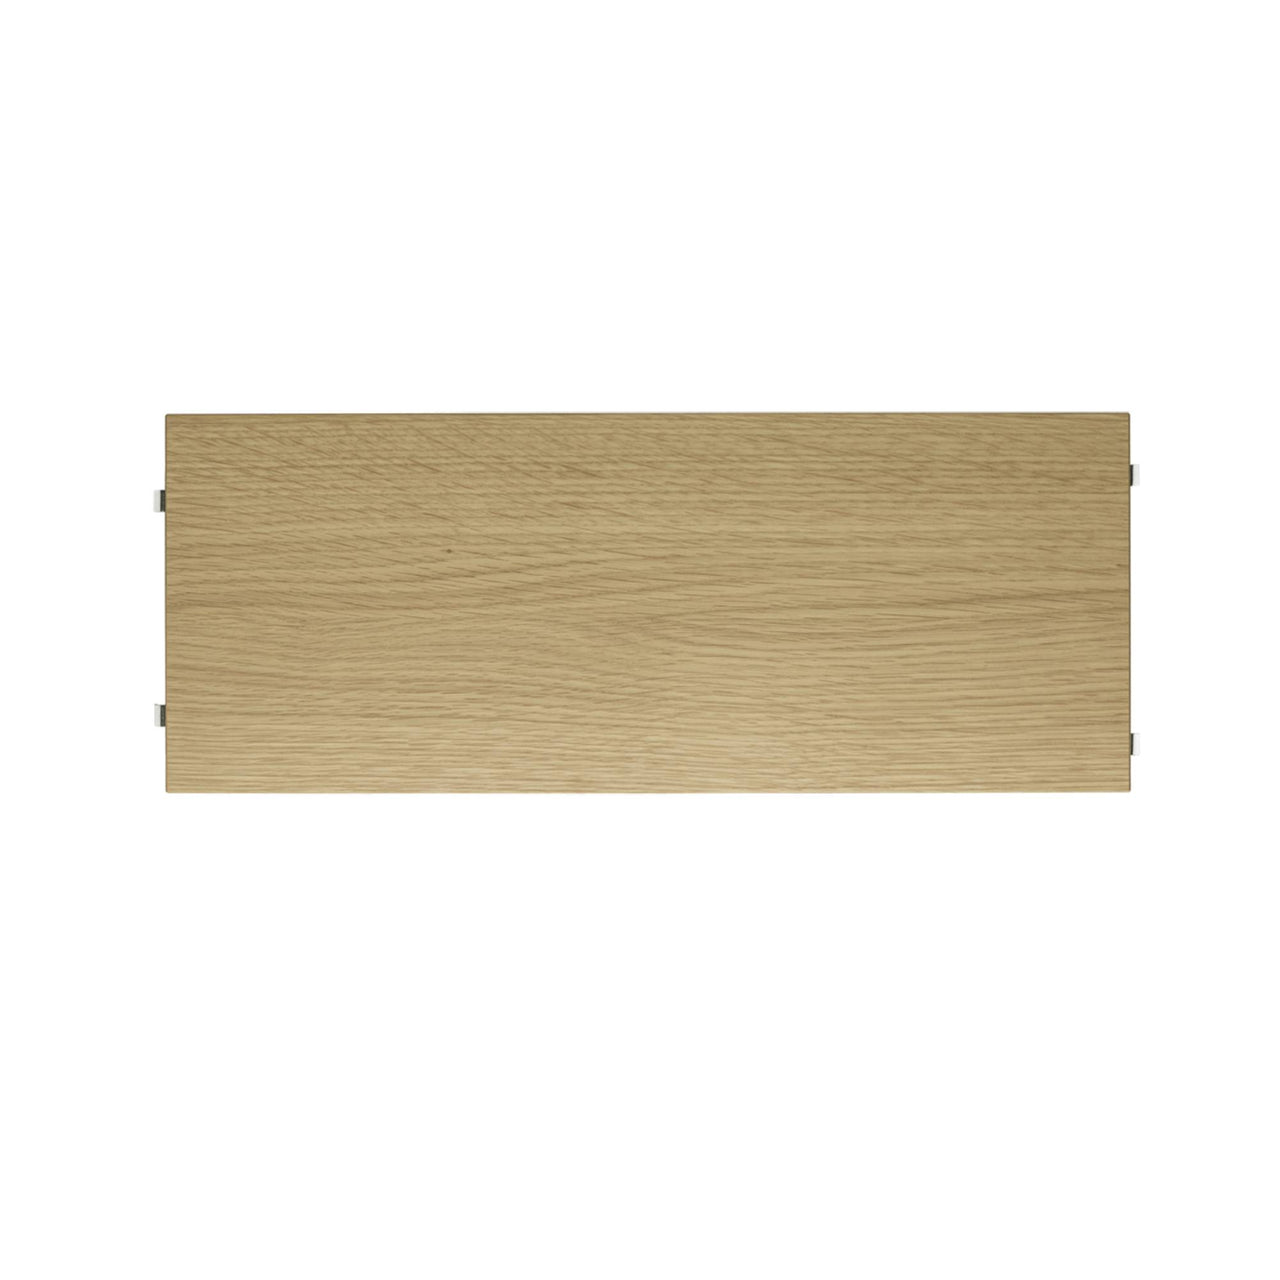 String System: Shelves (3-Pack) + 58 x 20 cm + Oak